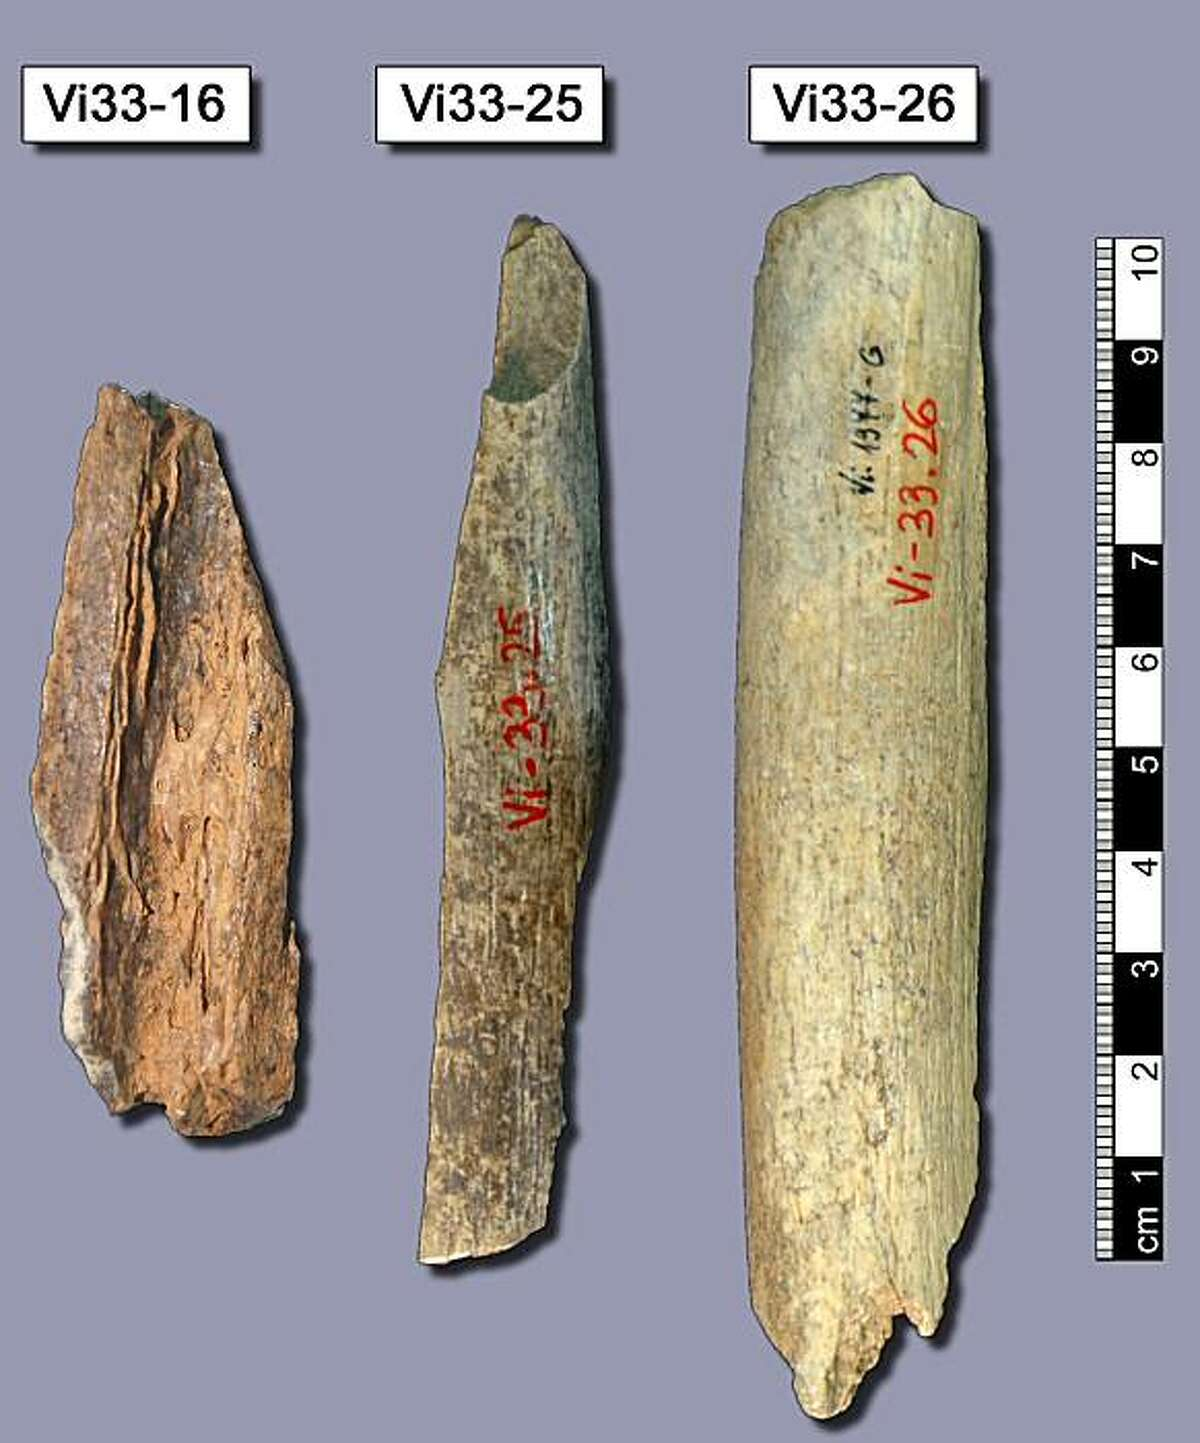 This picture shows three bones (Vi33-16, Vi33-25, Vi33-26) from Vindjia cave, Croatia. Most of the Neanderthal sequence was retrieved from these bones.